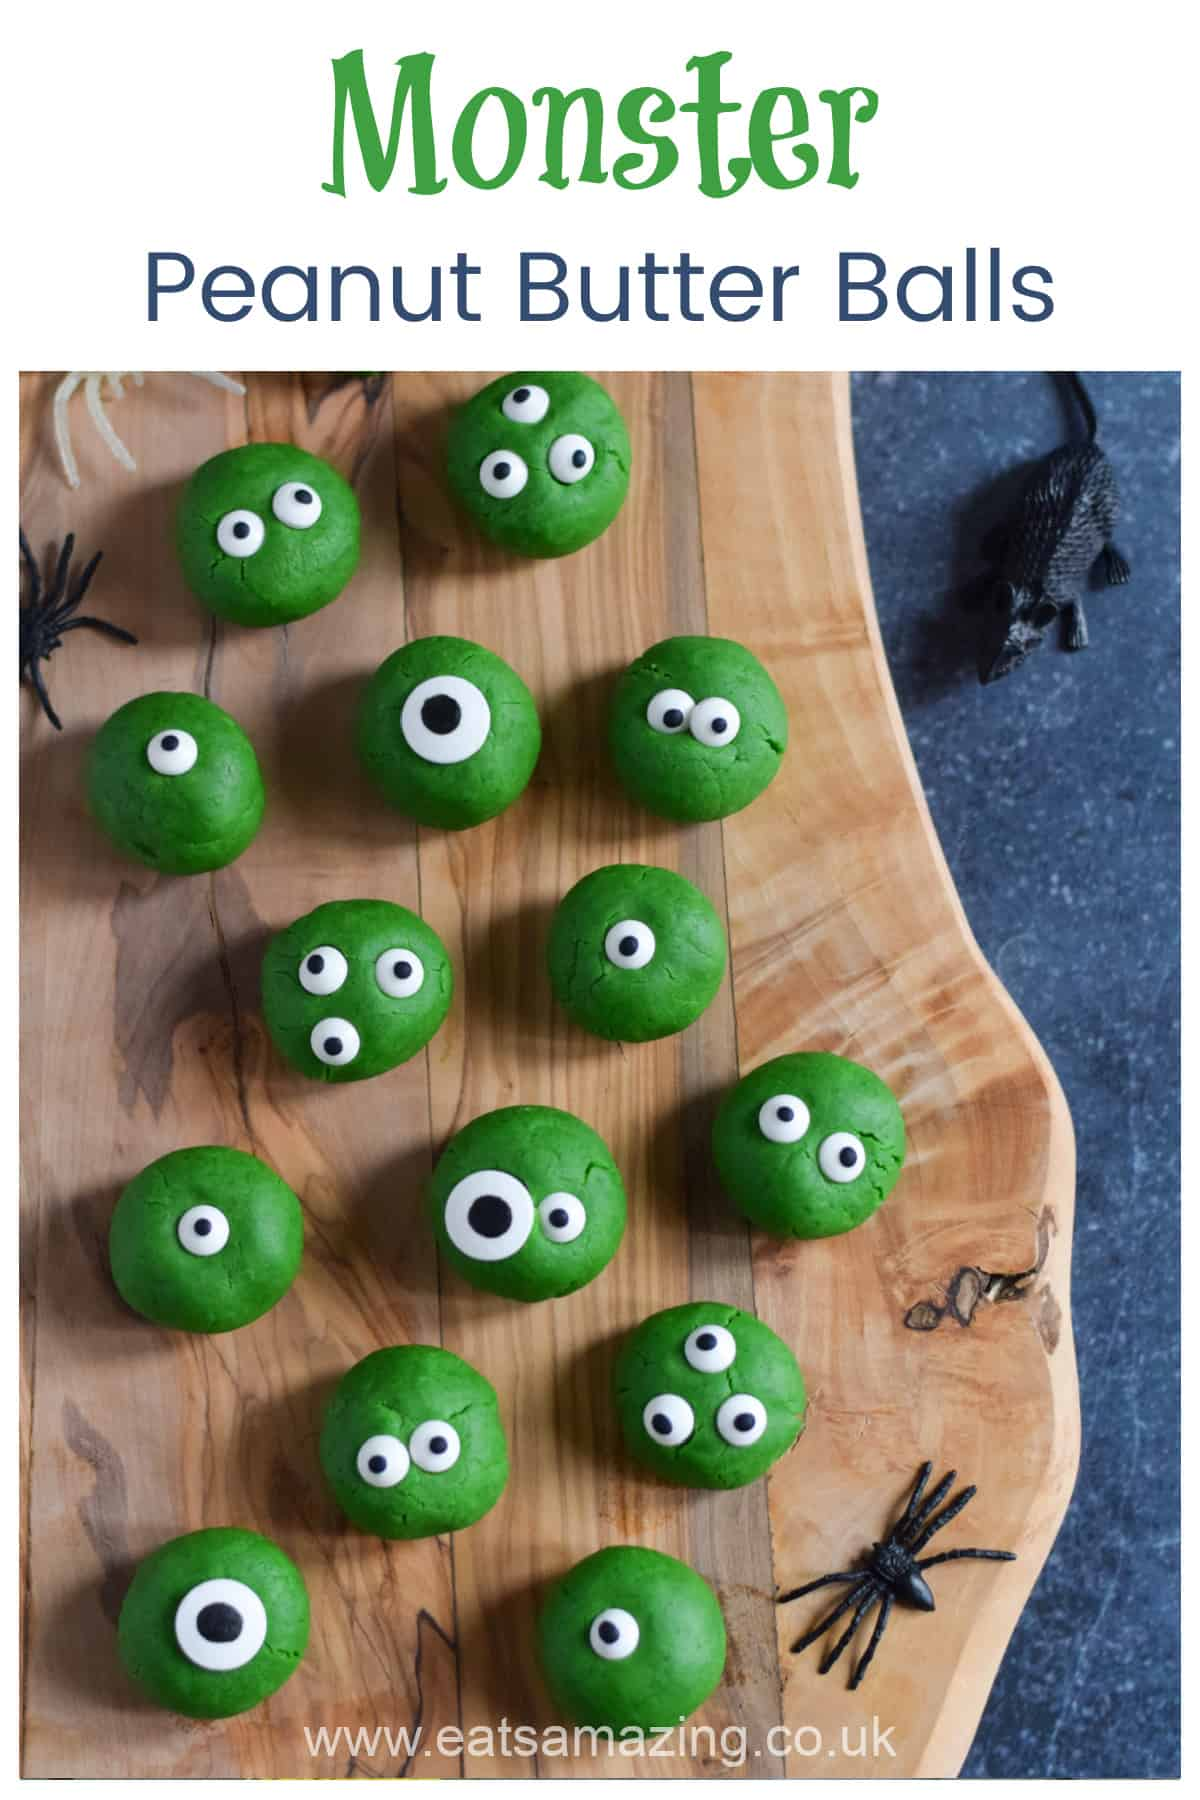 How to make cute and easy Monster Peanut Butter Balls - fun Halloween recipe for kids